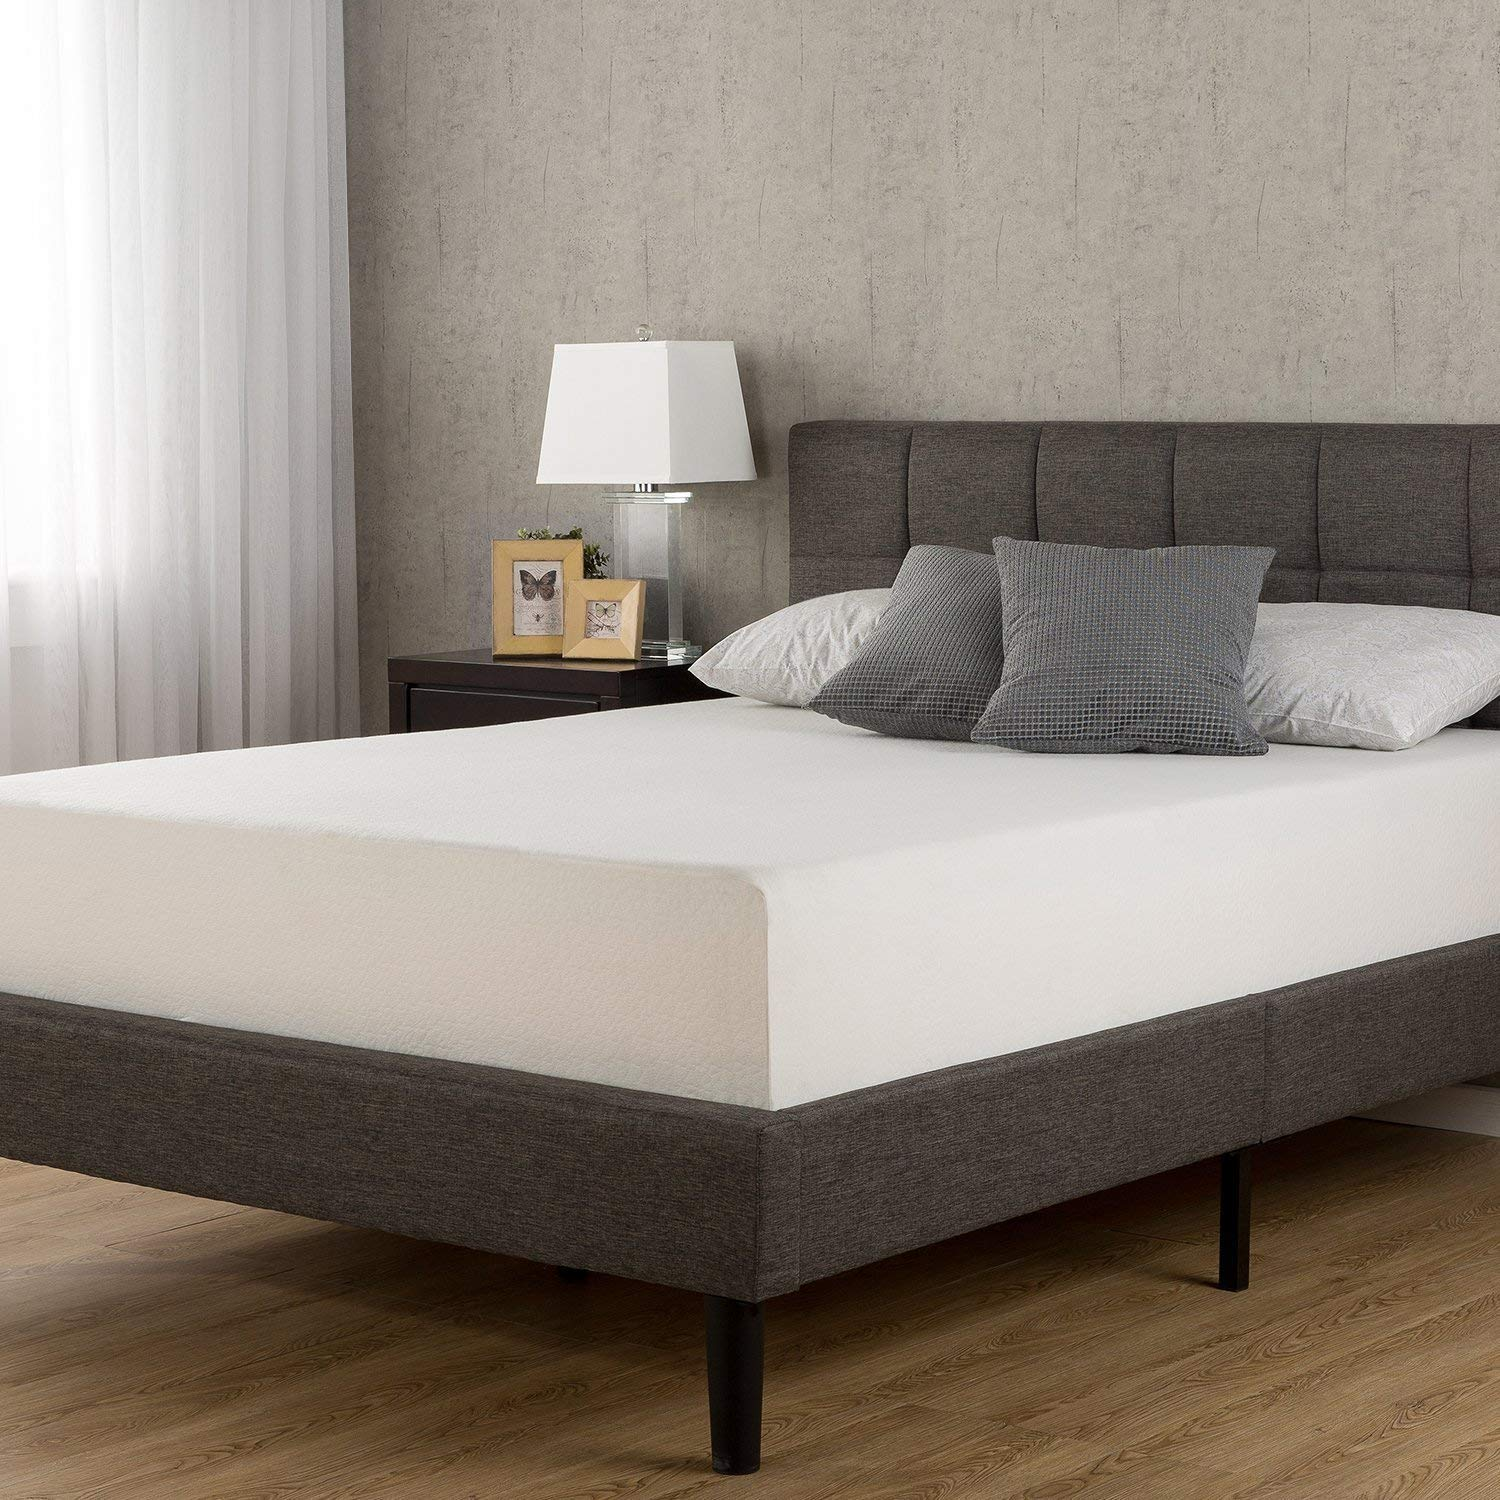 Zinus Best Cheap Mattress Review by www.snoremagazine.com